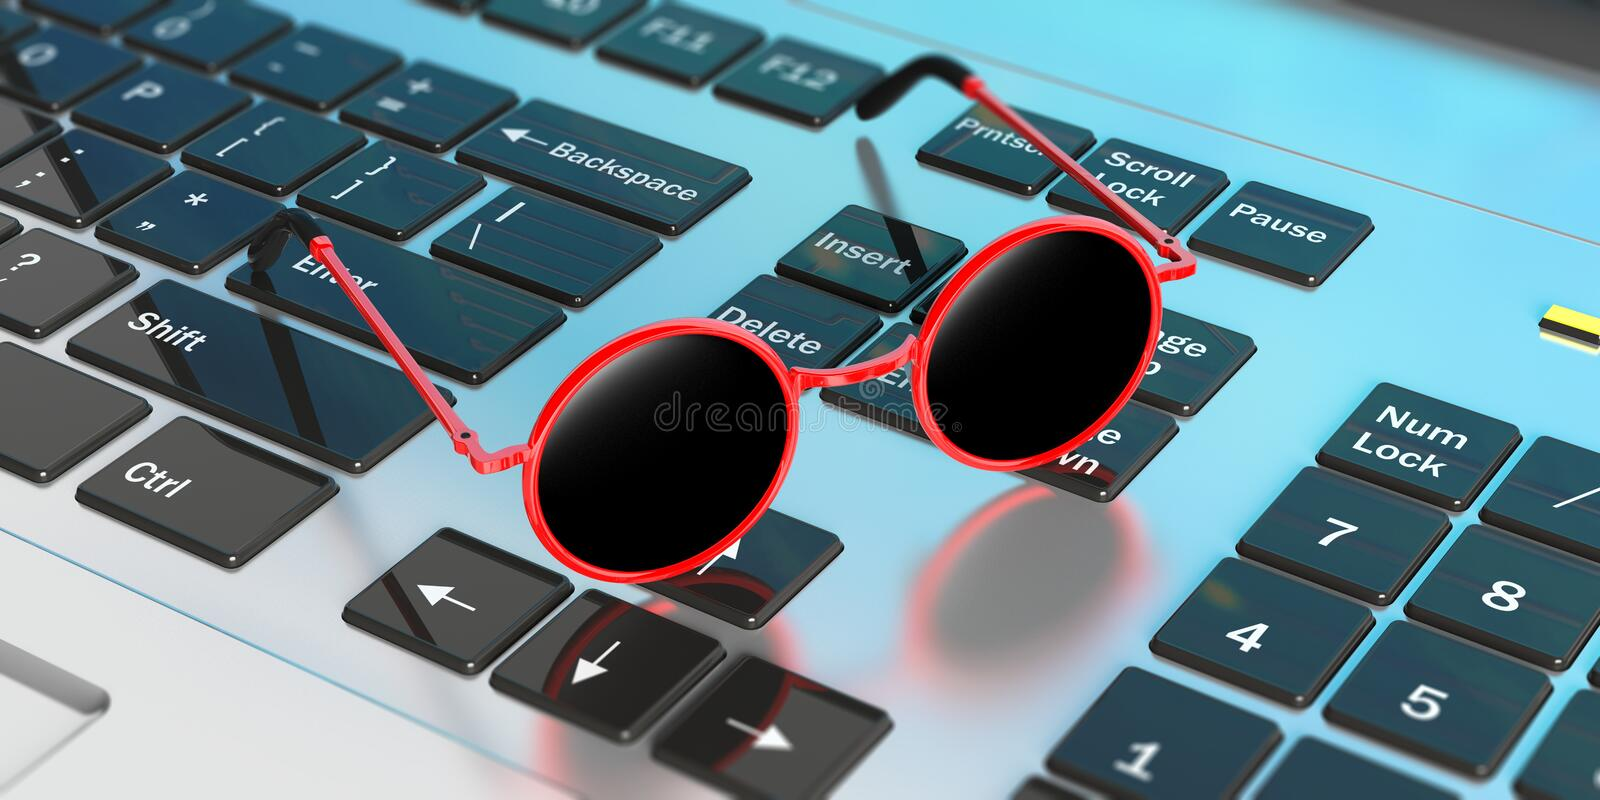 Sunglasses red round frame with black lens, on computer keyboard. 3d illustration. Dreaming summer vacation at work. Sunglasses red round frame with black lens royalty free illustration